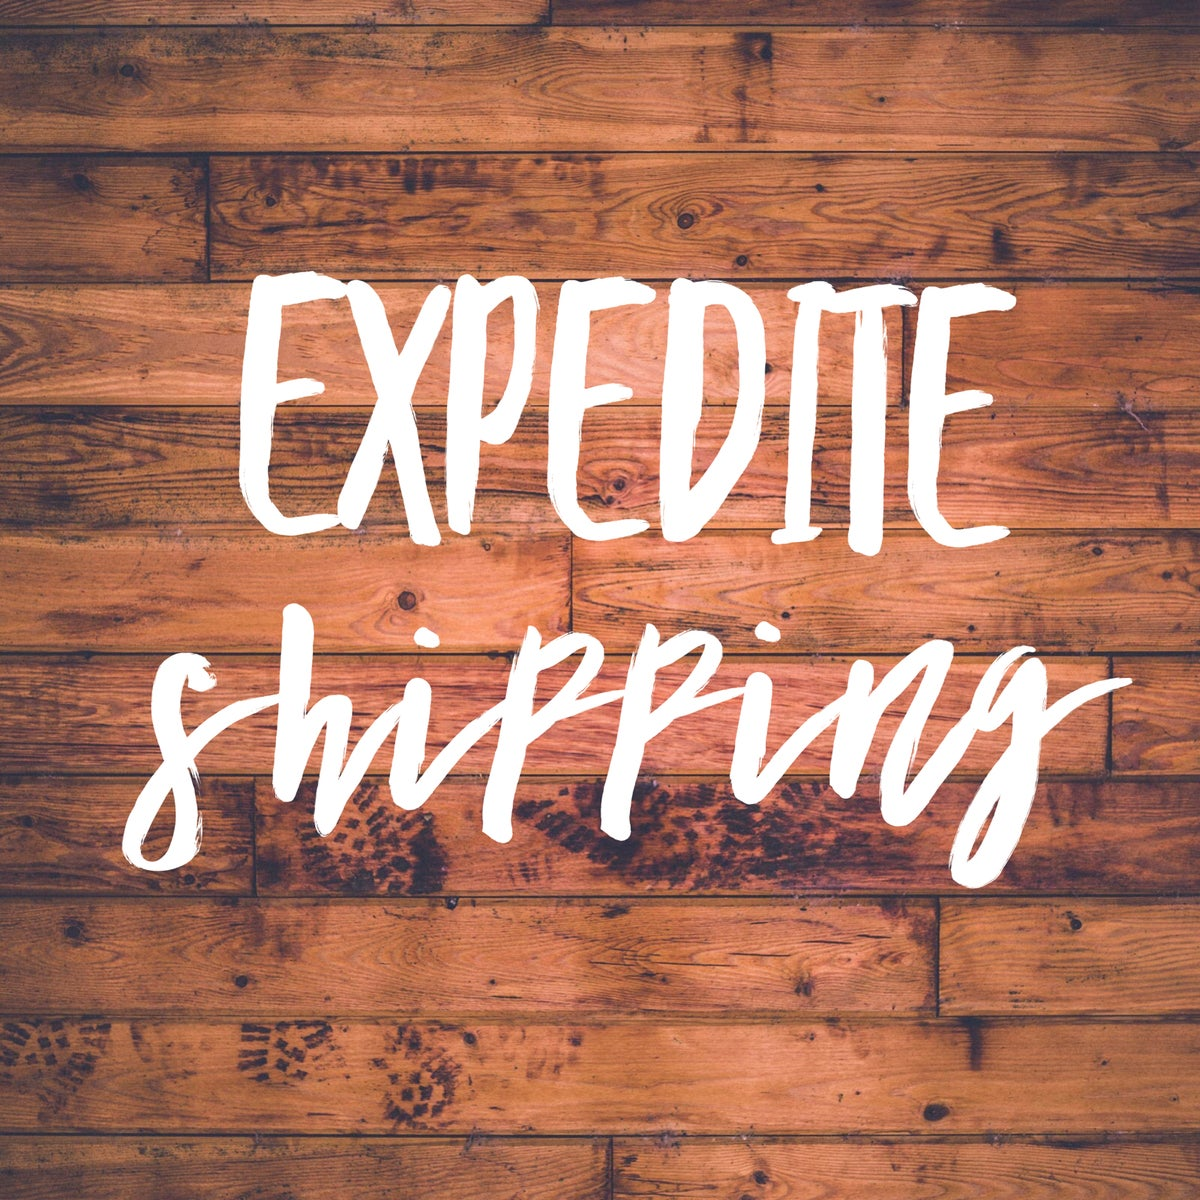 Image of Expedite shipping